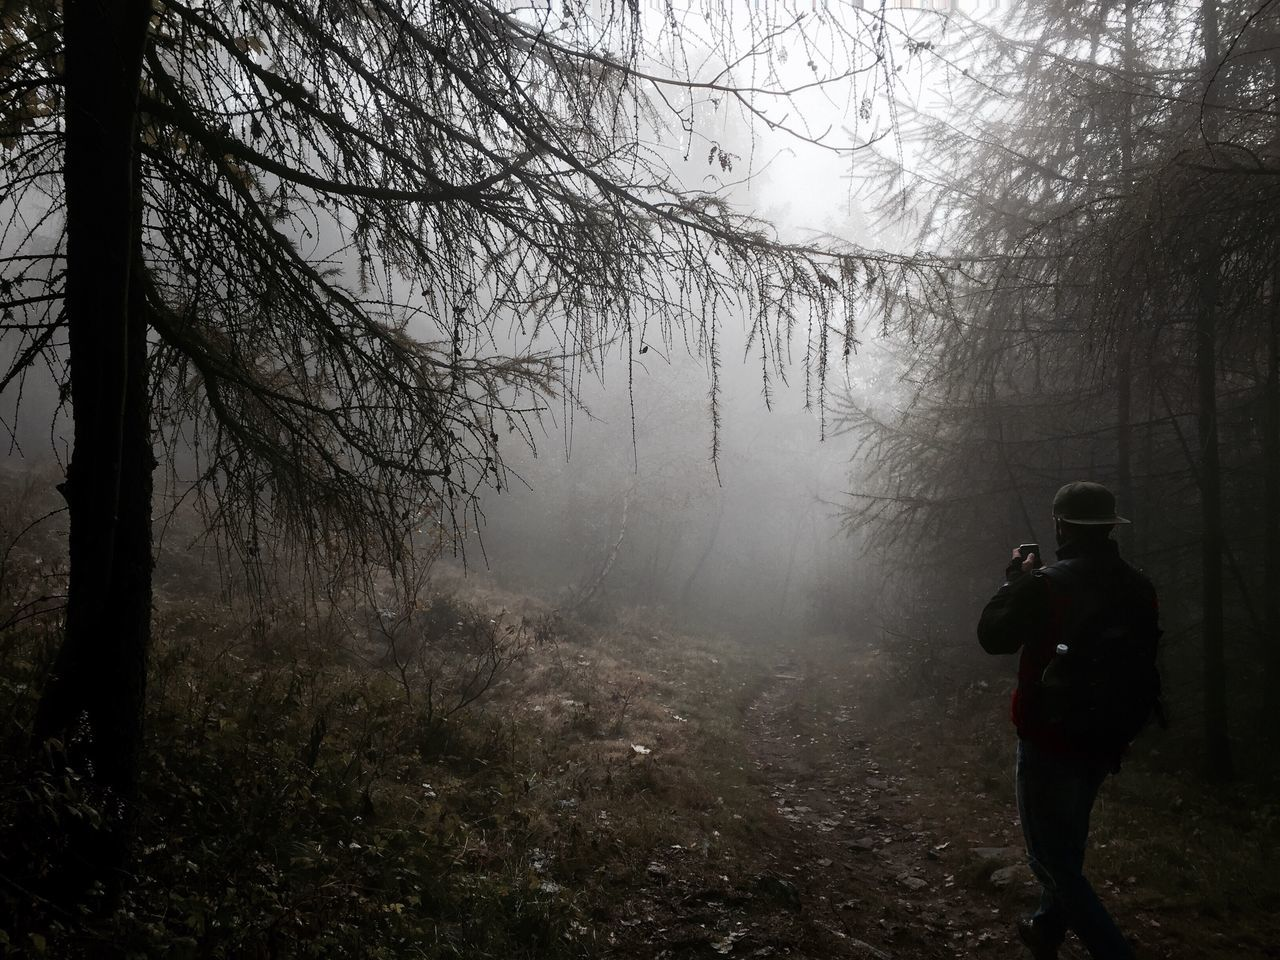 forest, tree, rear view, adventure, one person, fog, nature, hiking, backpack, standing, real people, beauty in nature, men, branch, scenics, lifestyles, outdoors, day, adult, people, adults only